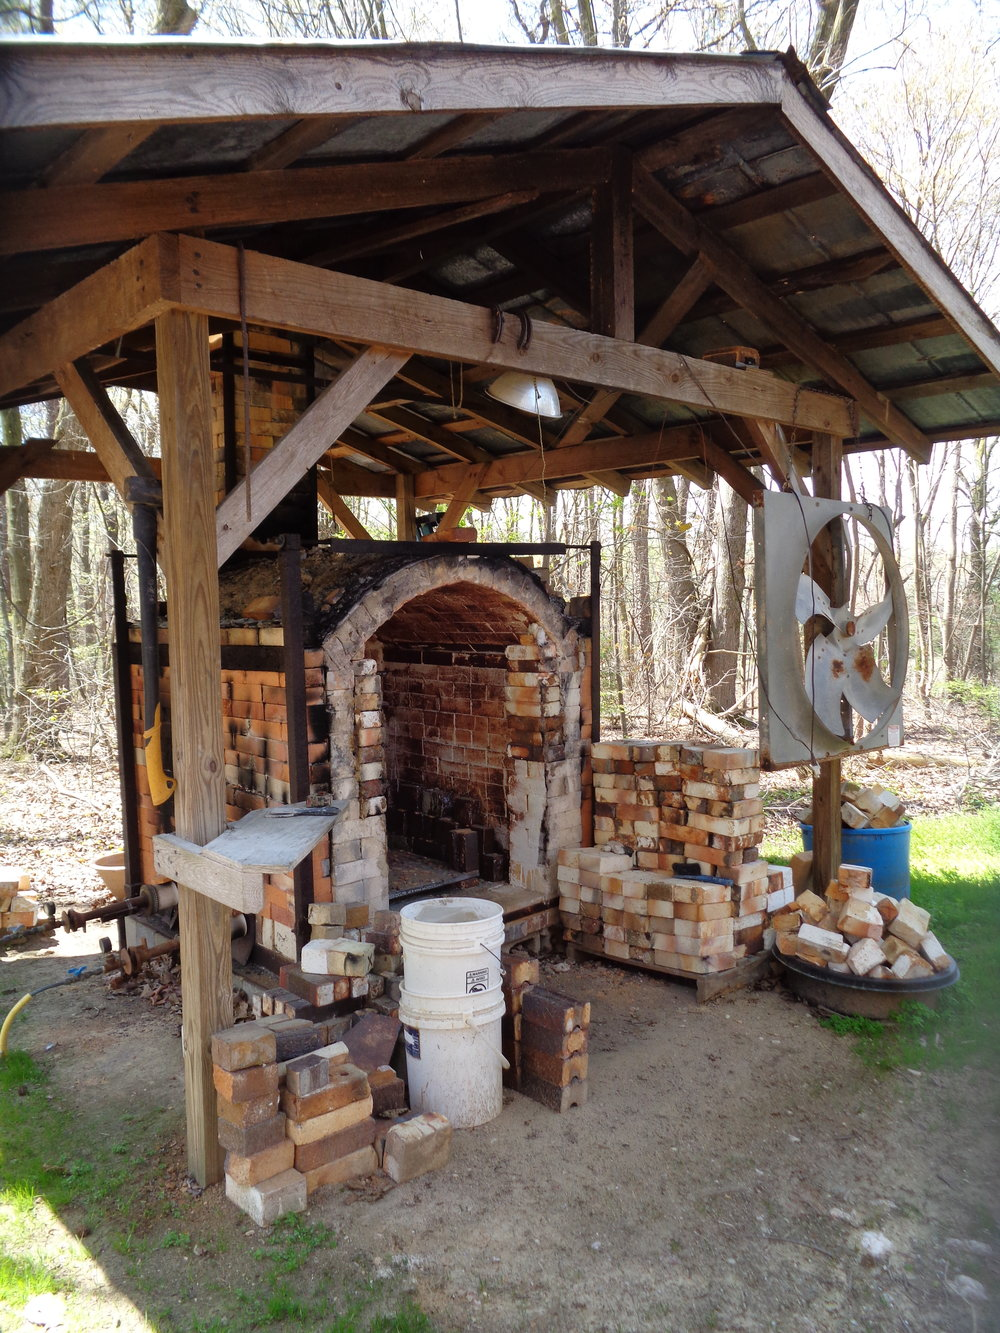 And this is the gas/salt kiln that we fired last week--she's a soft brick downdraft kiln Chad built early on his career. Chad's estimated that he's fired this kiln about 100+ times.